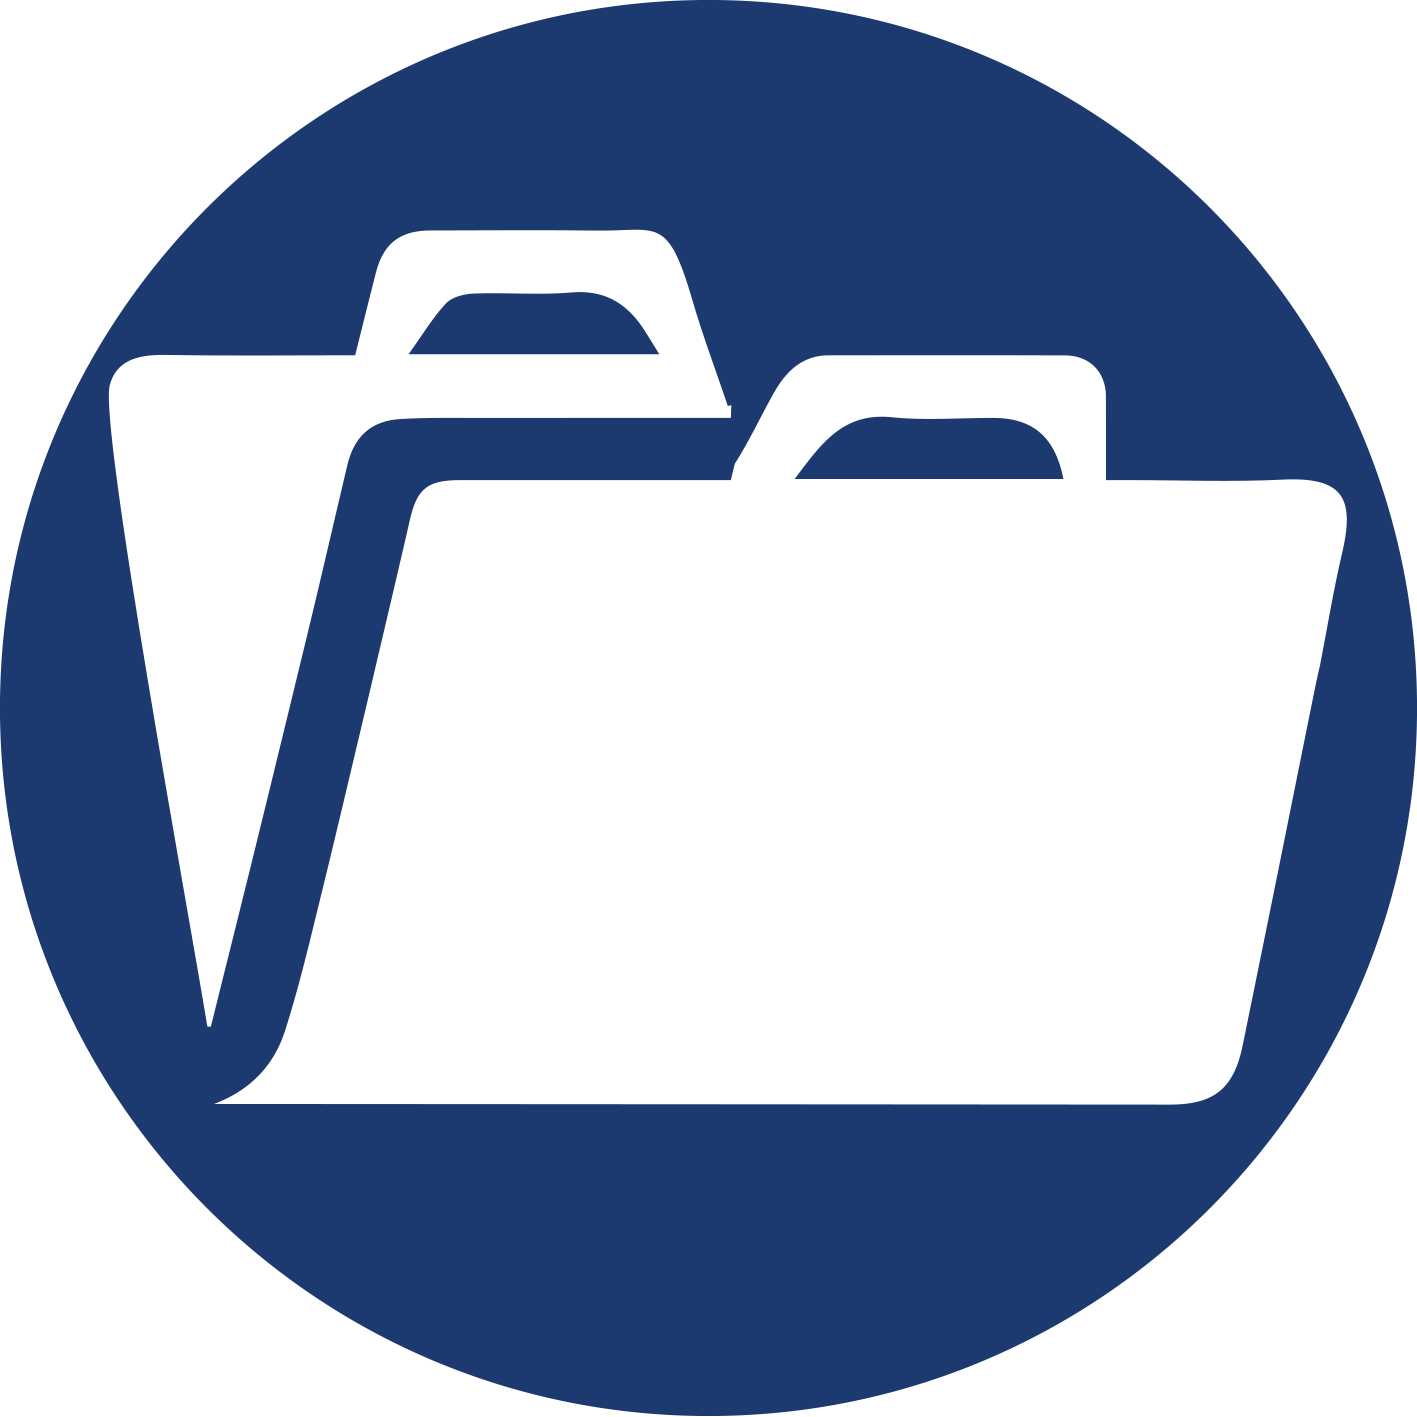 caseStudy-icon.png